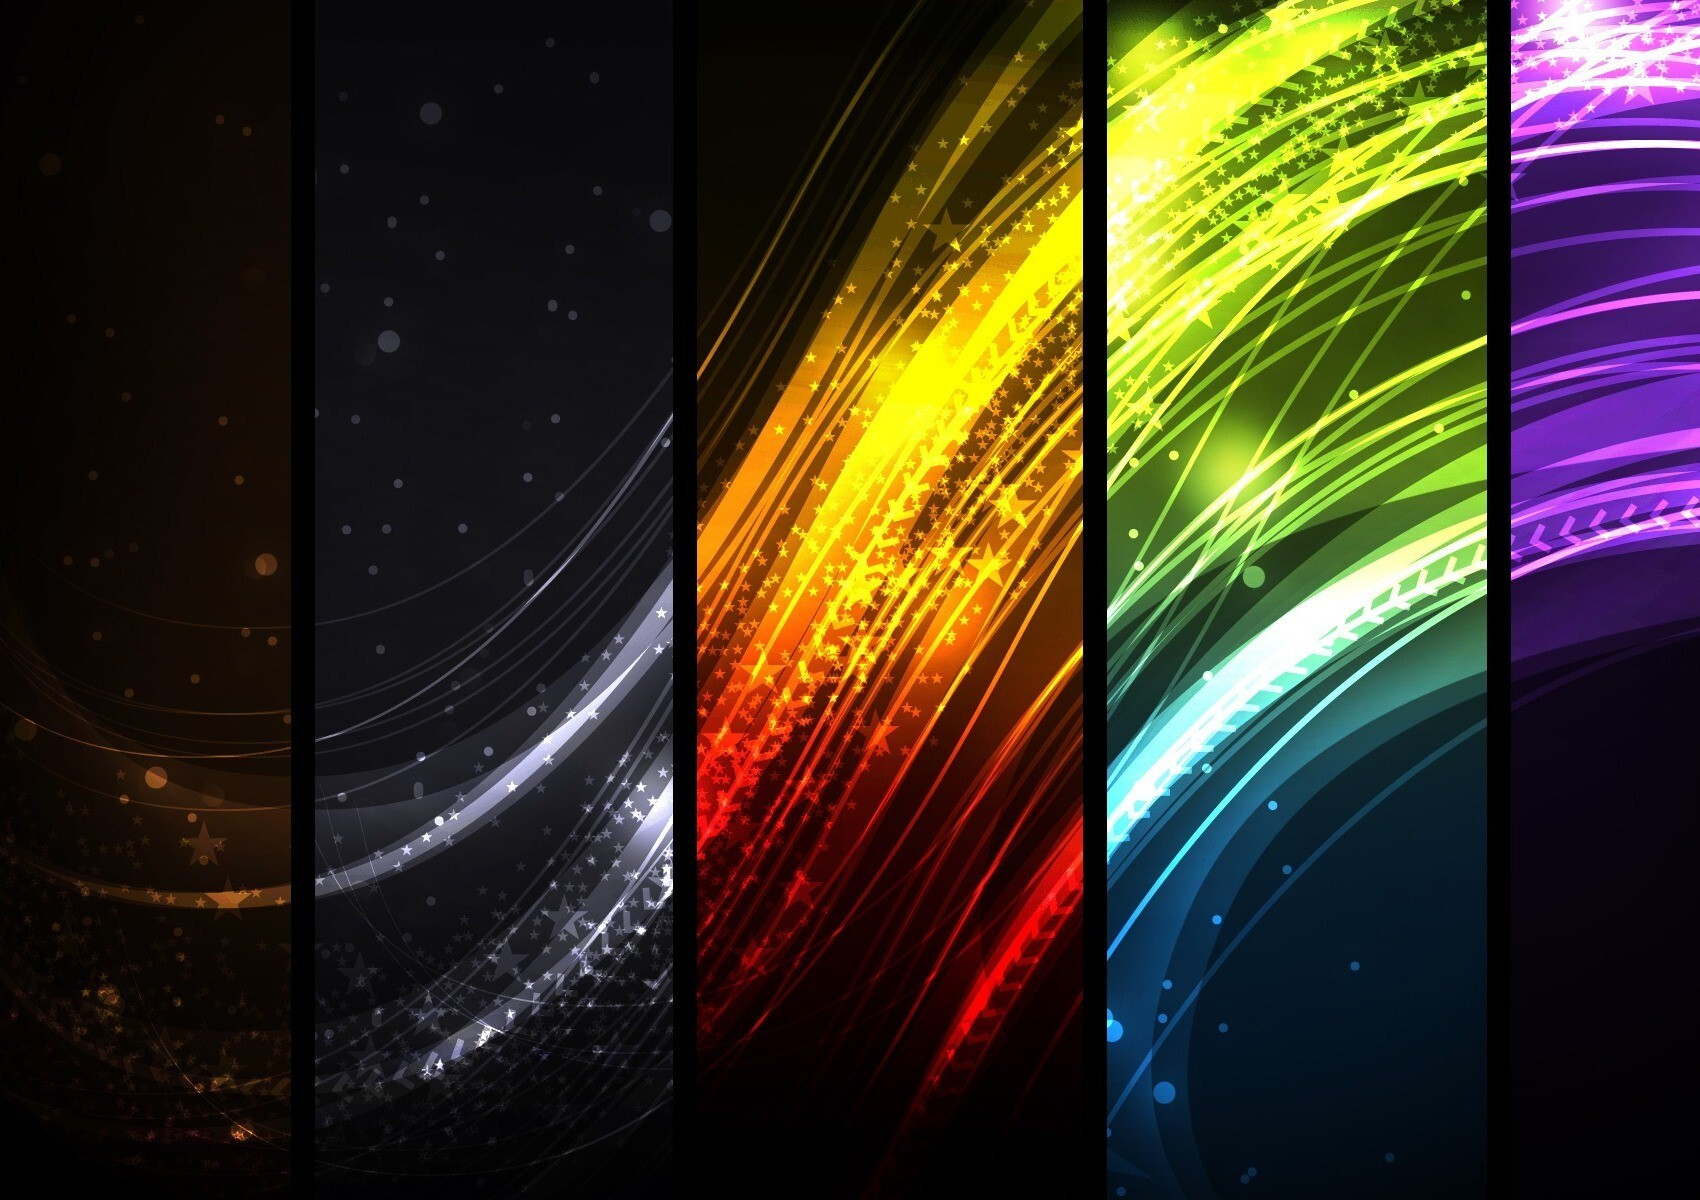 colorful ray of abstract hd photos in high resolution for